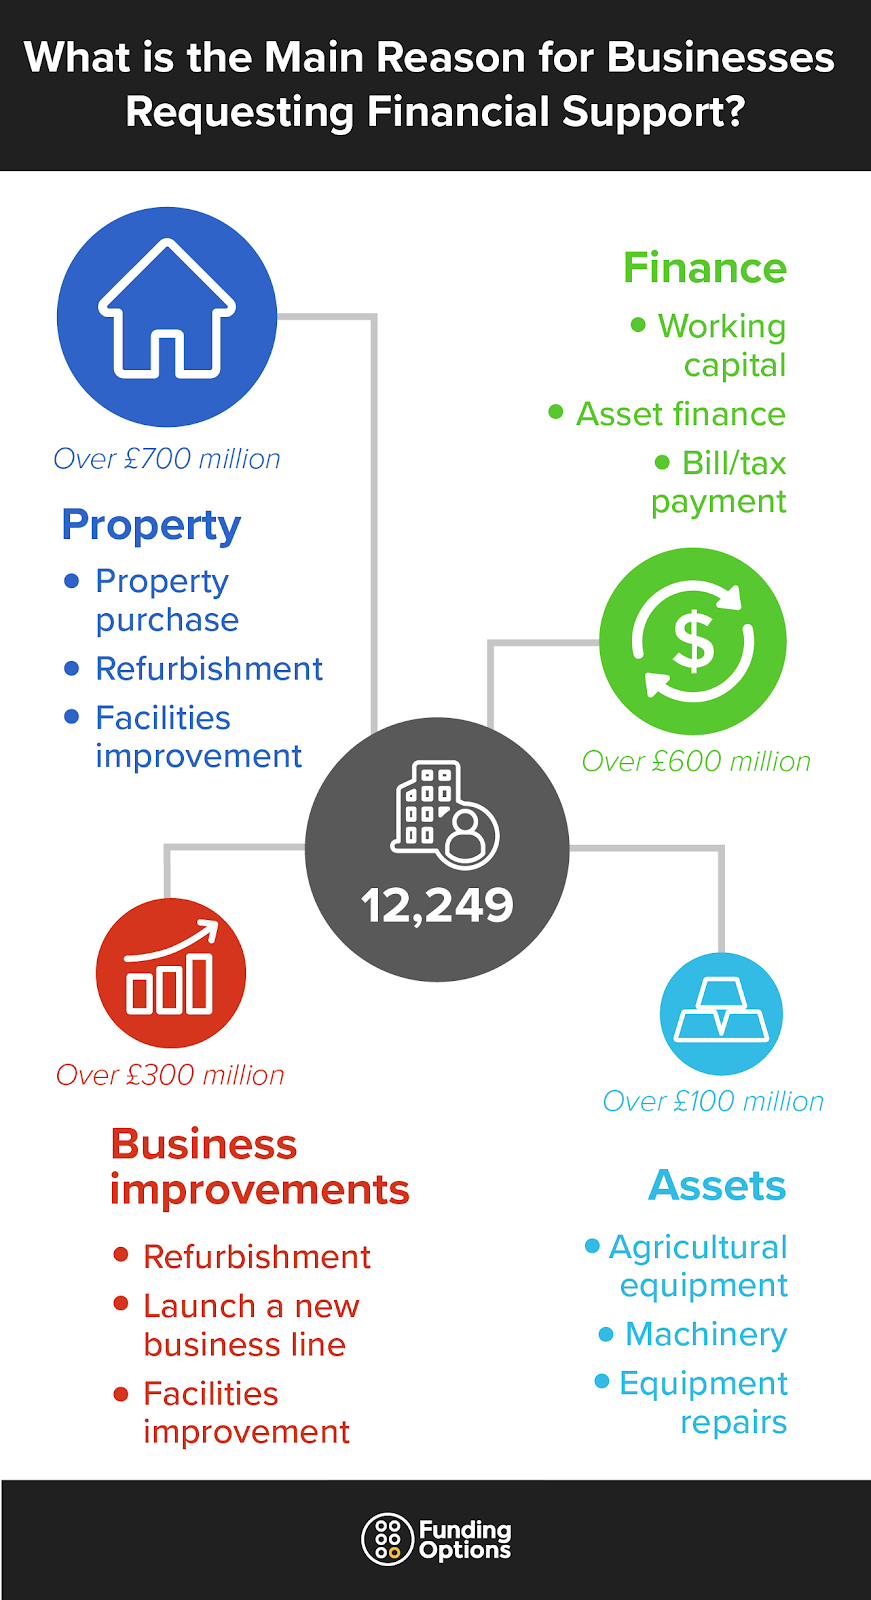 Main reasons for businesses requesting financial support diagram